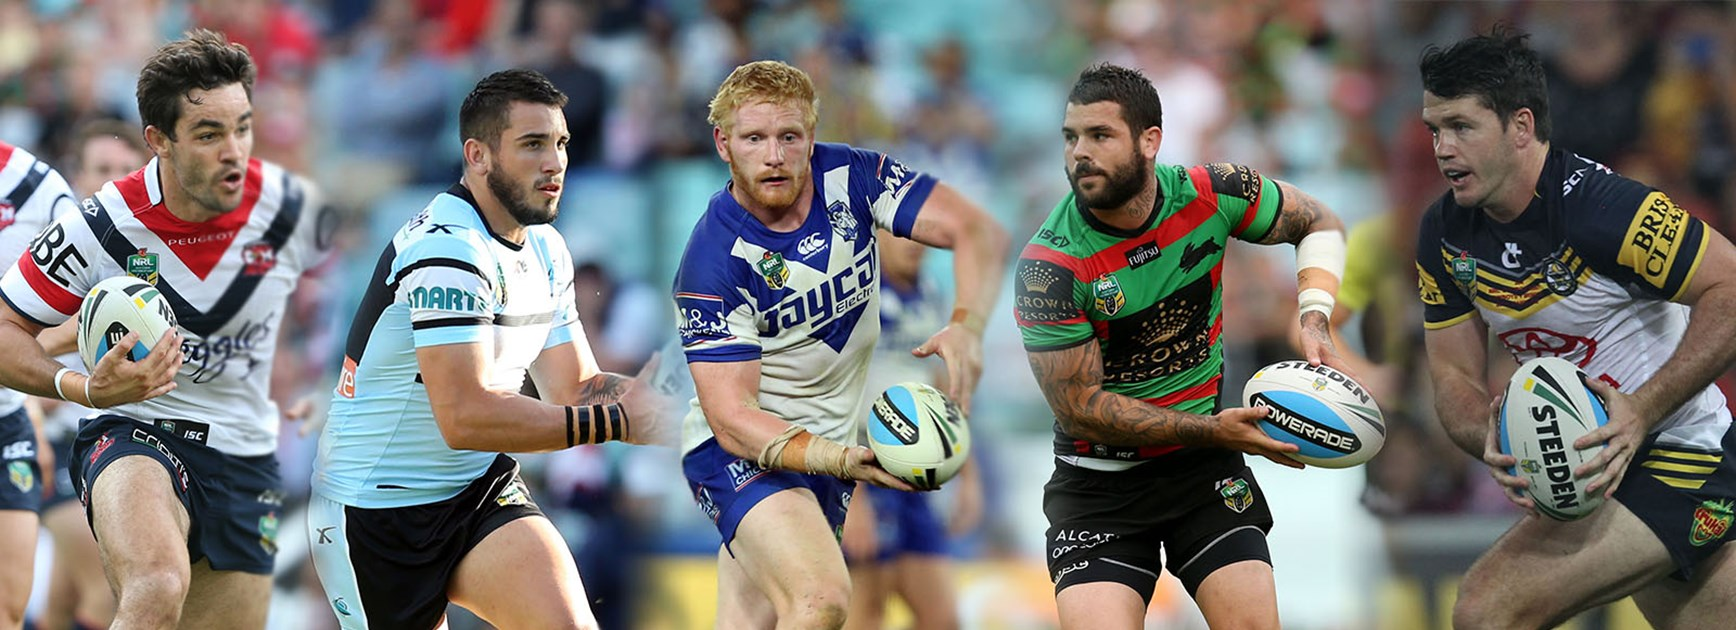 There are some big headaches for NRL Fantasy coaches this week.